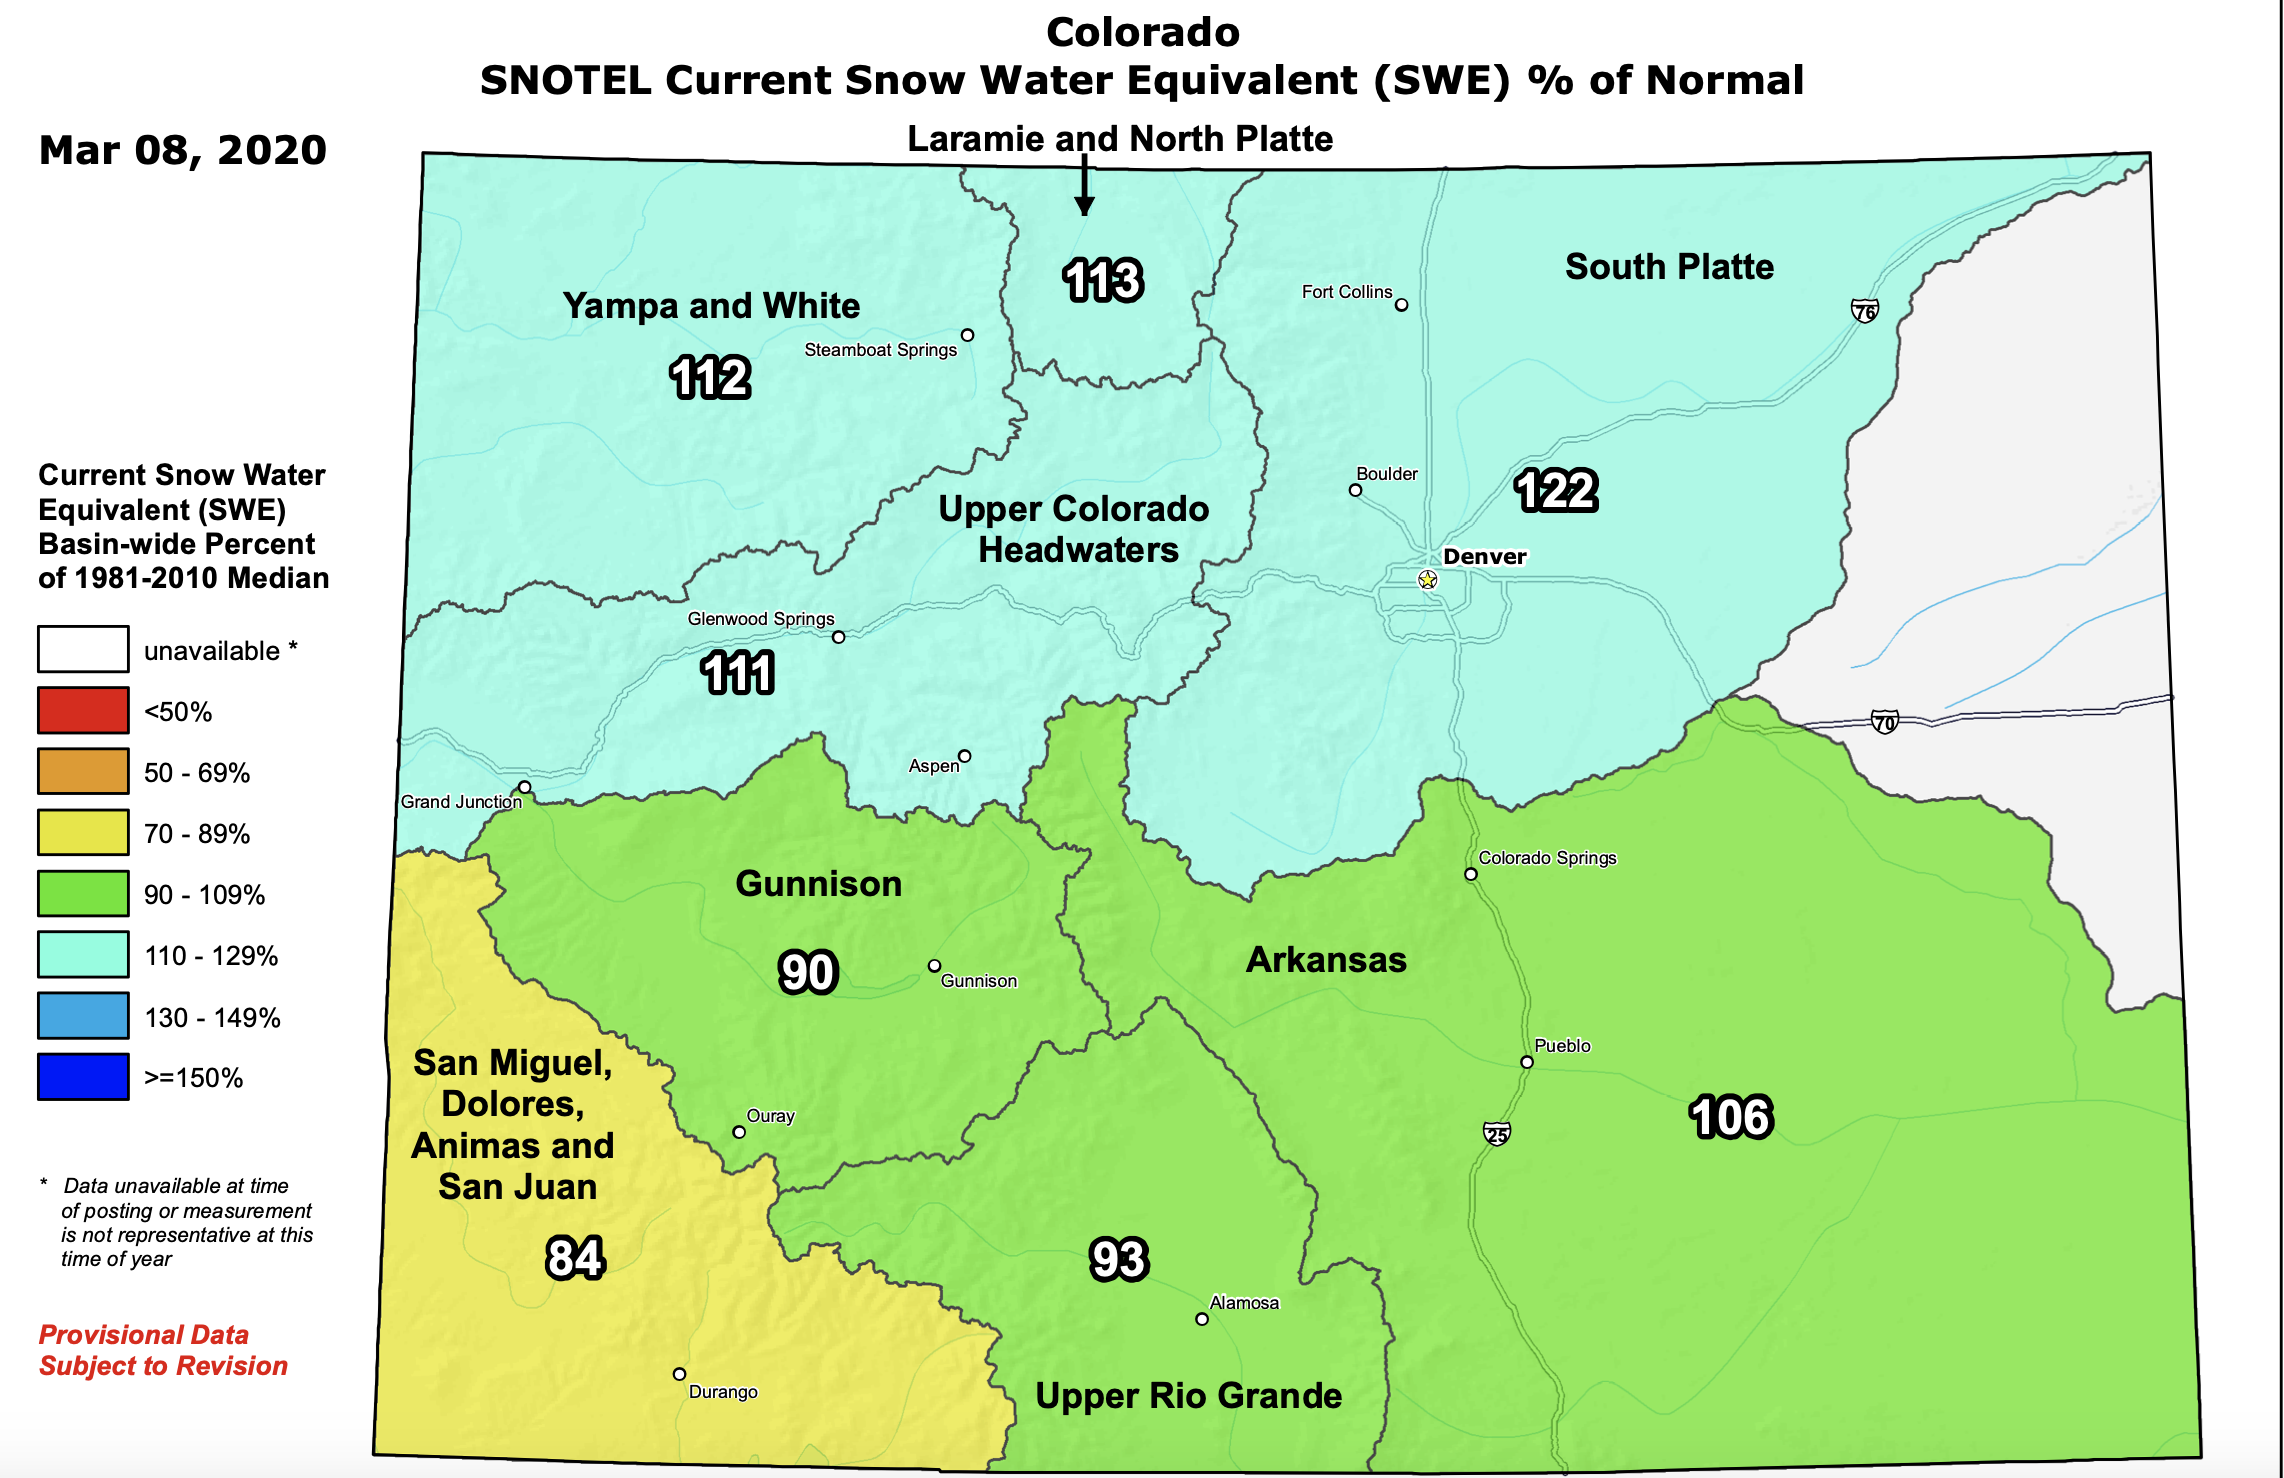 CO_Snowpack_20200308